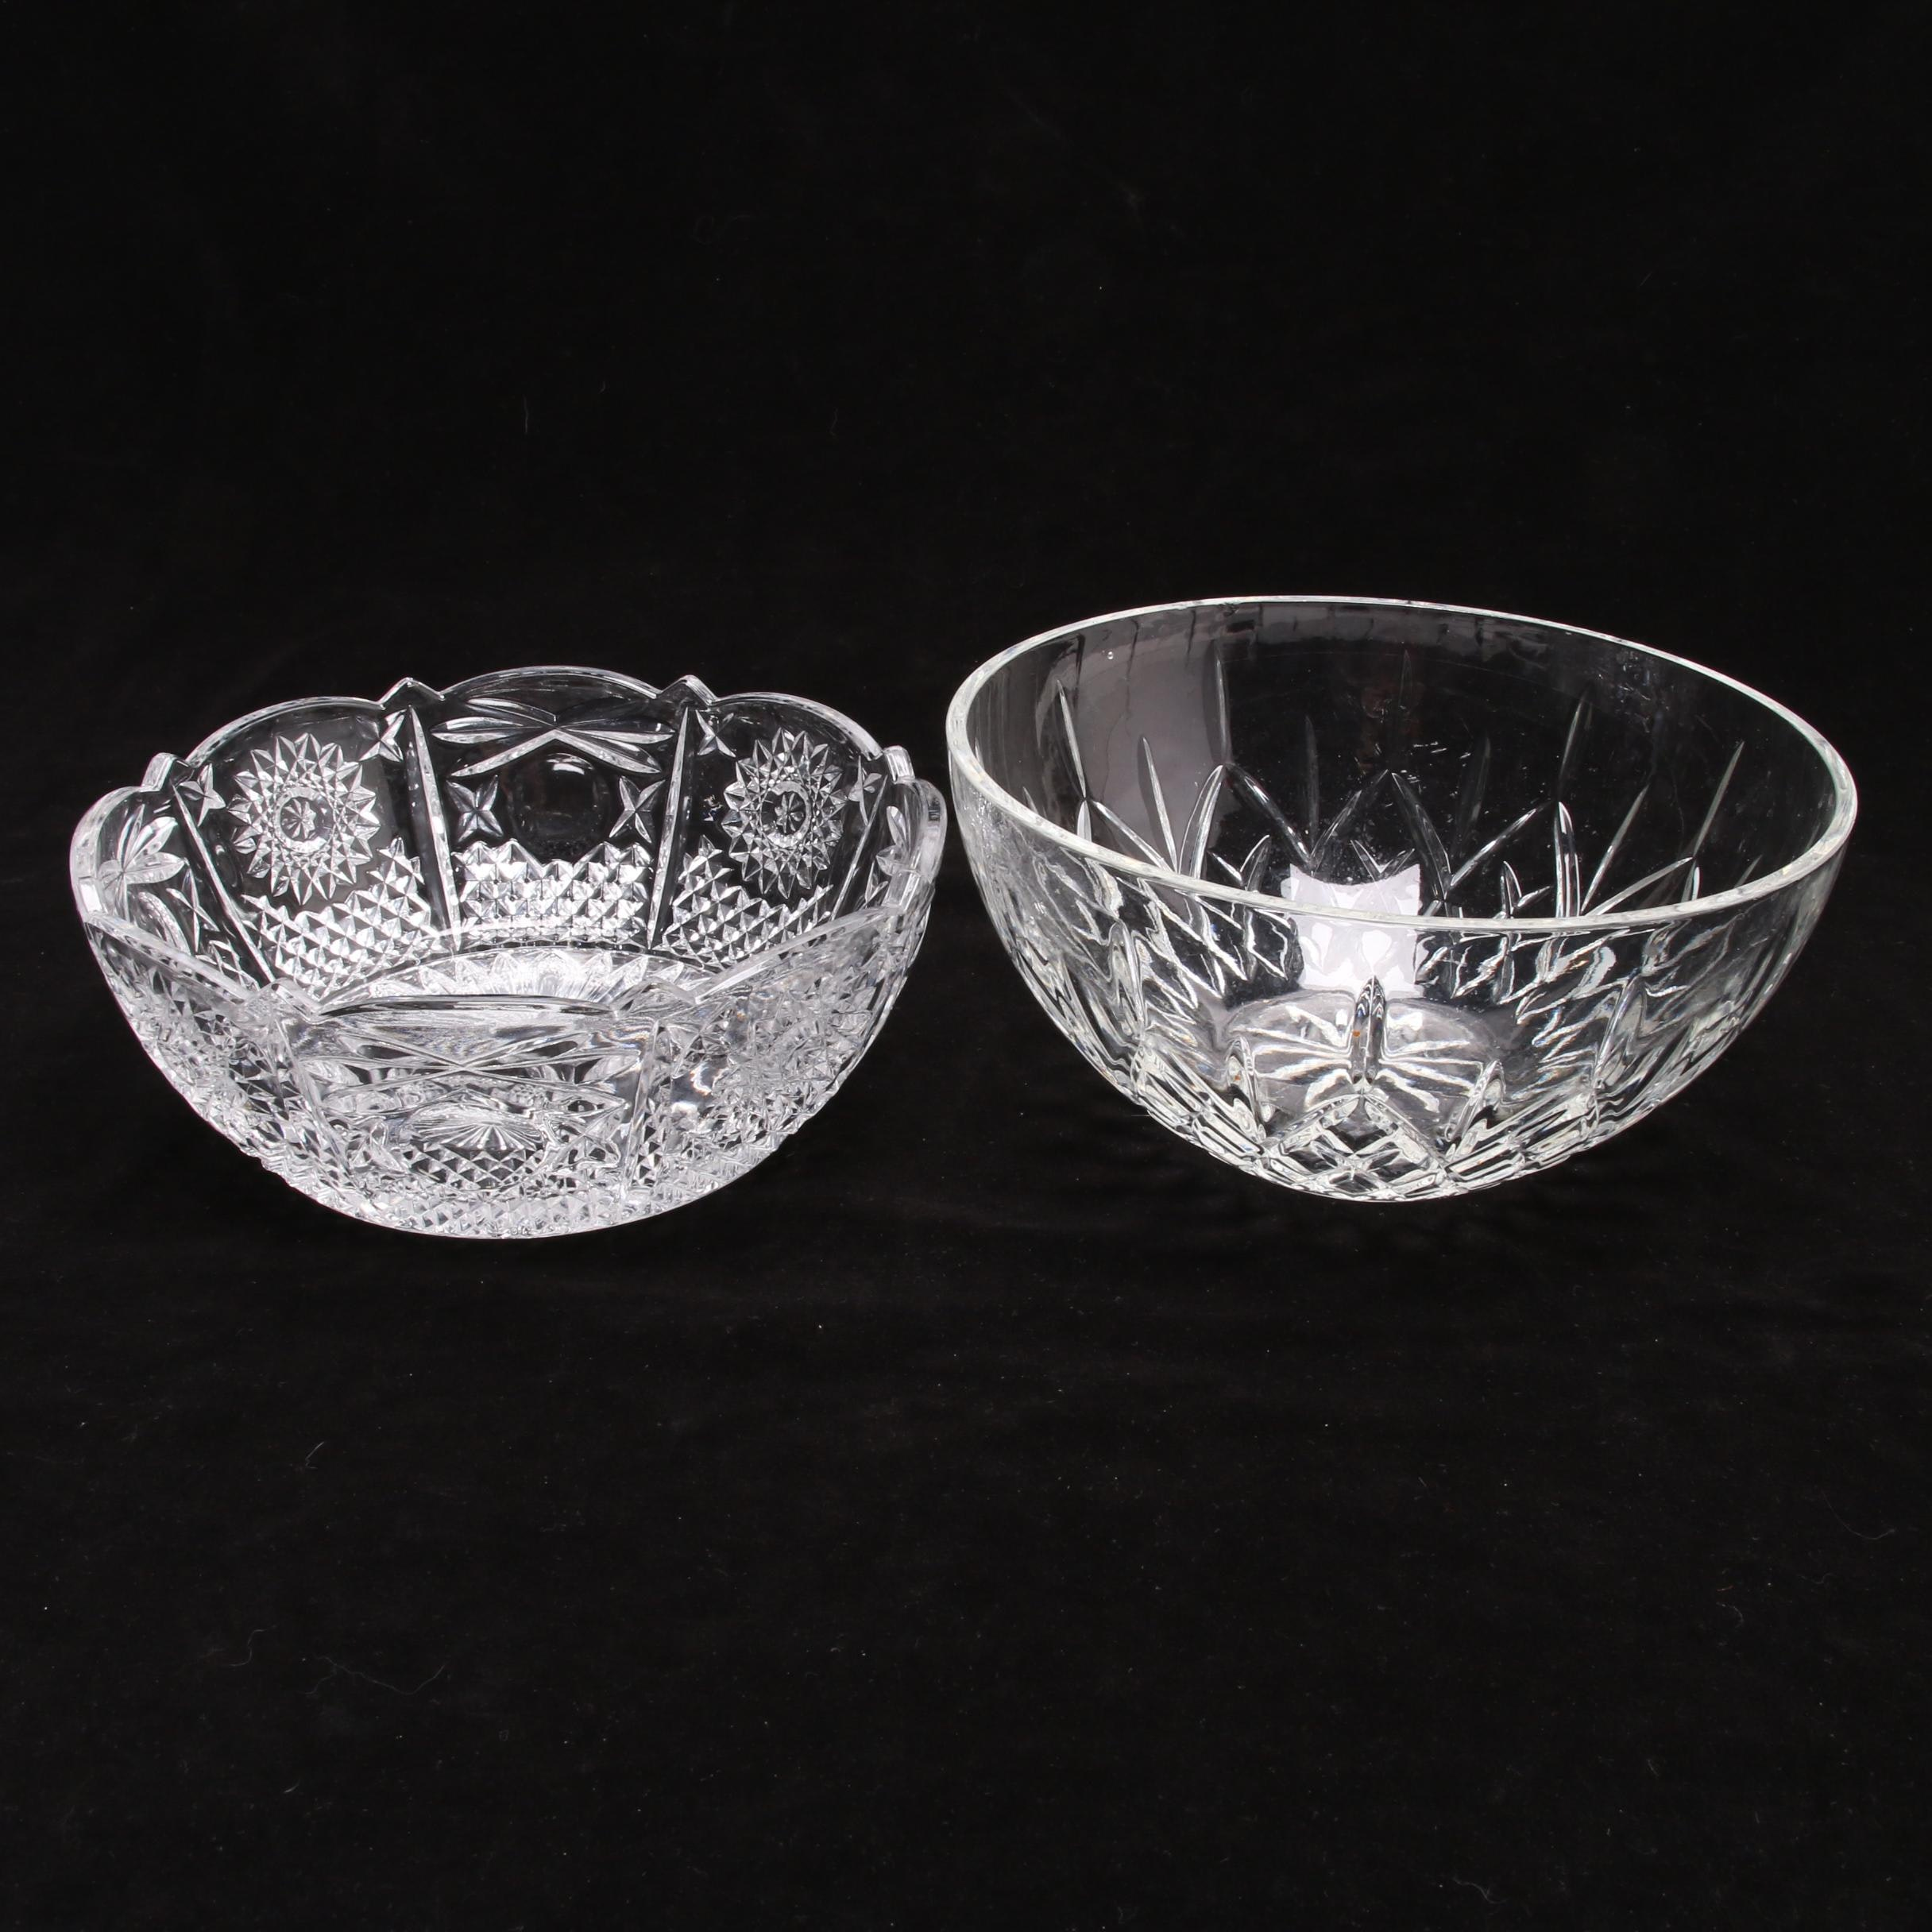 Two Molded Crystal Bowls